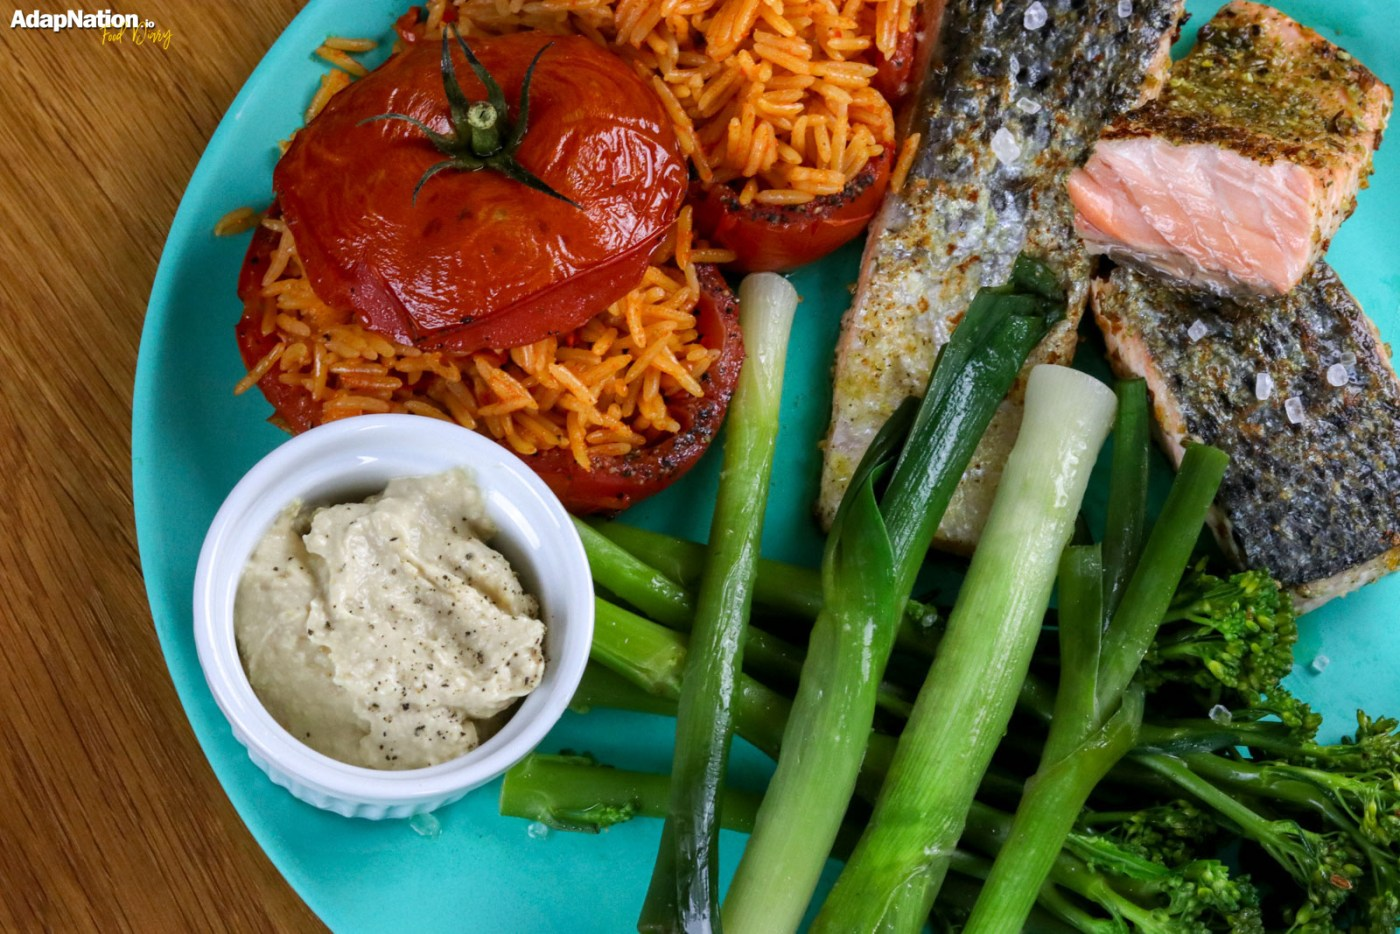 Stuffed Tomatoes, Pan Fried Salmon & Tender Veg